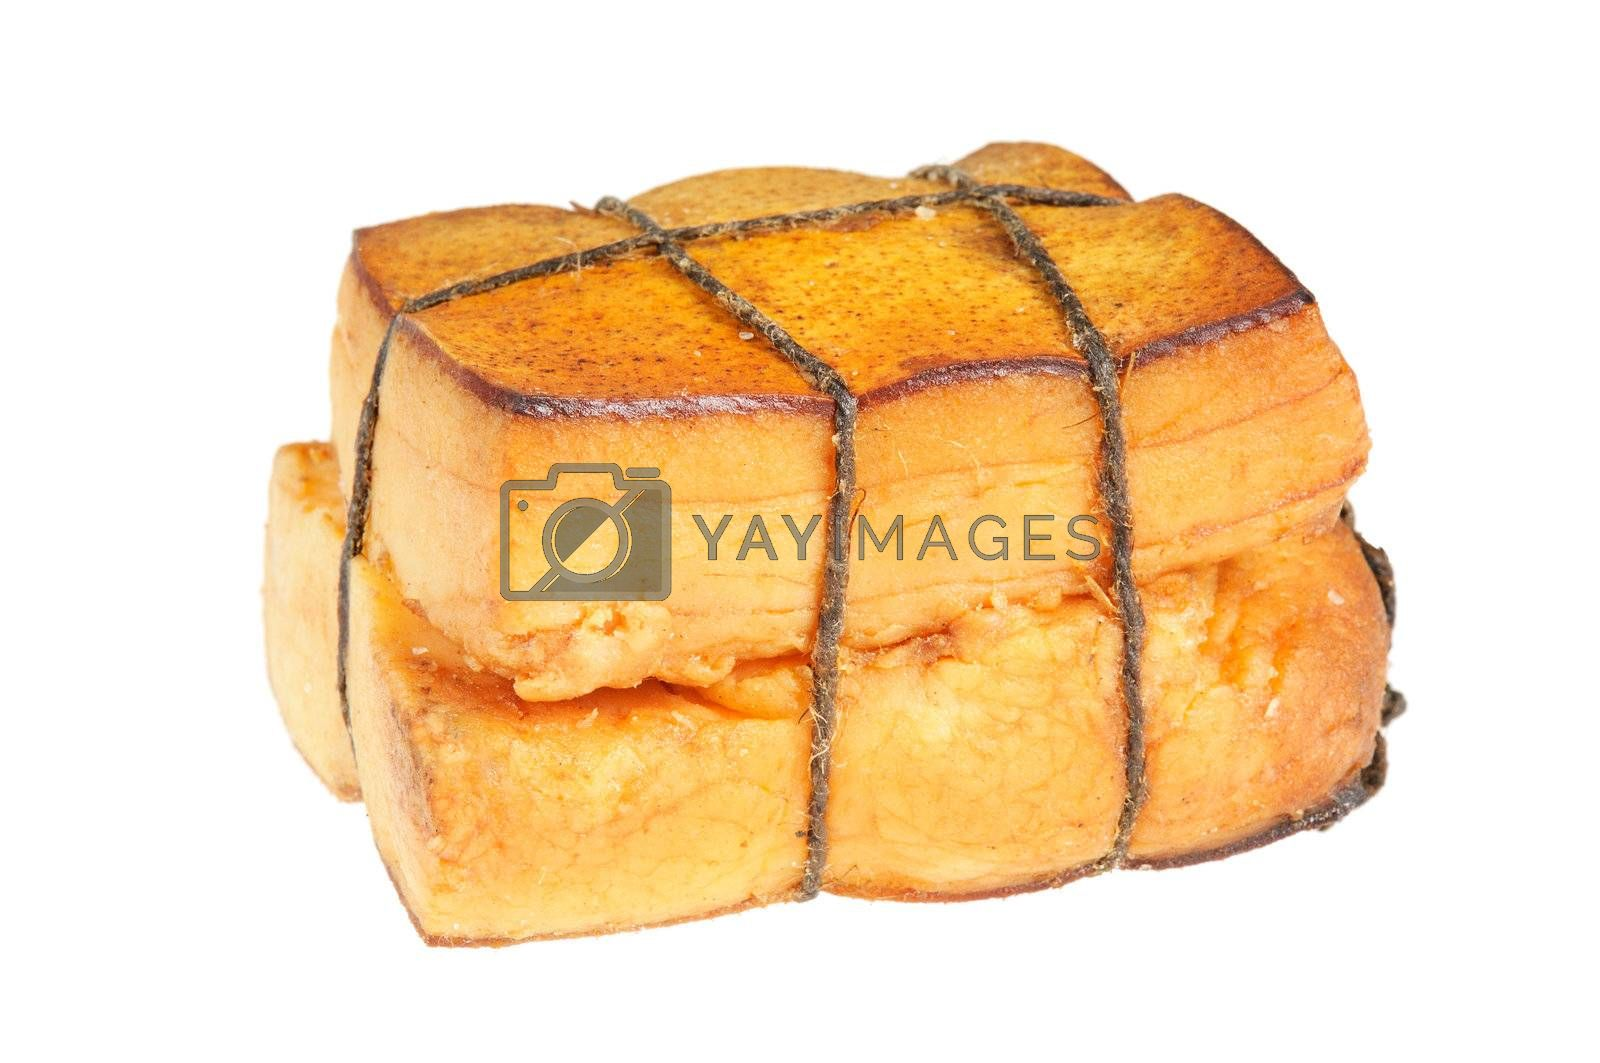 A piece of smoked bacon, tied with string. Isolated on white.